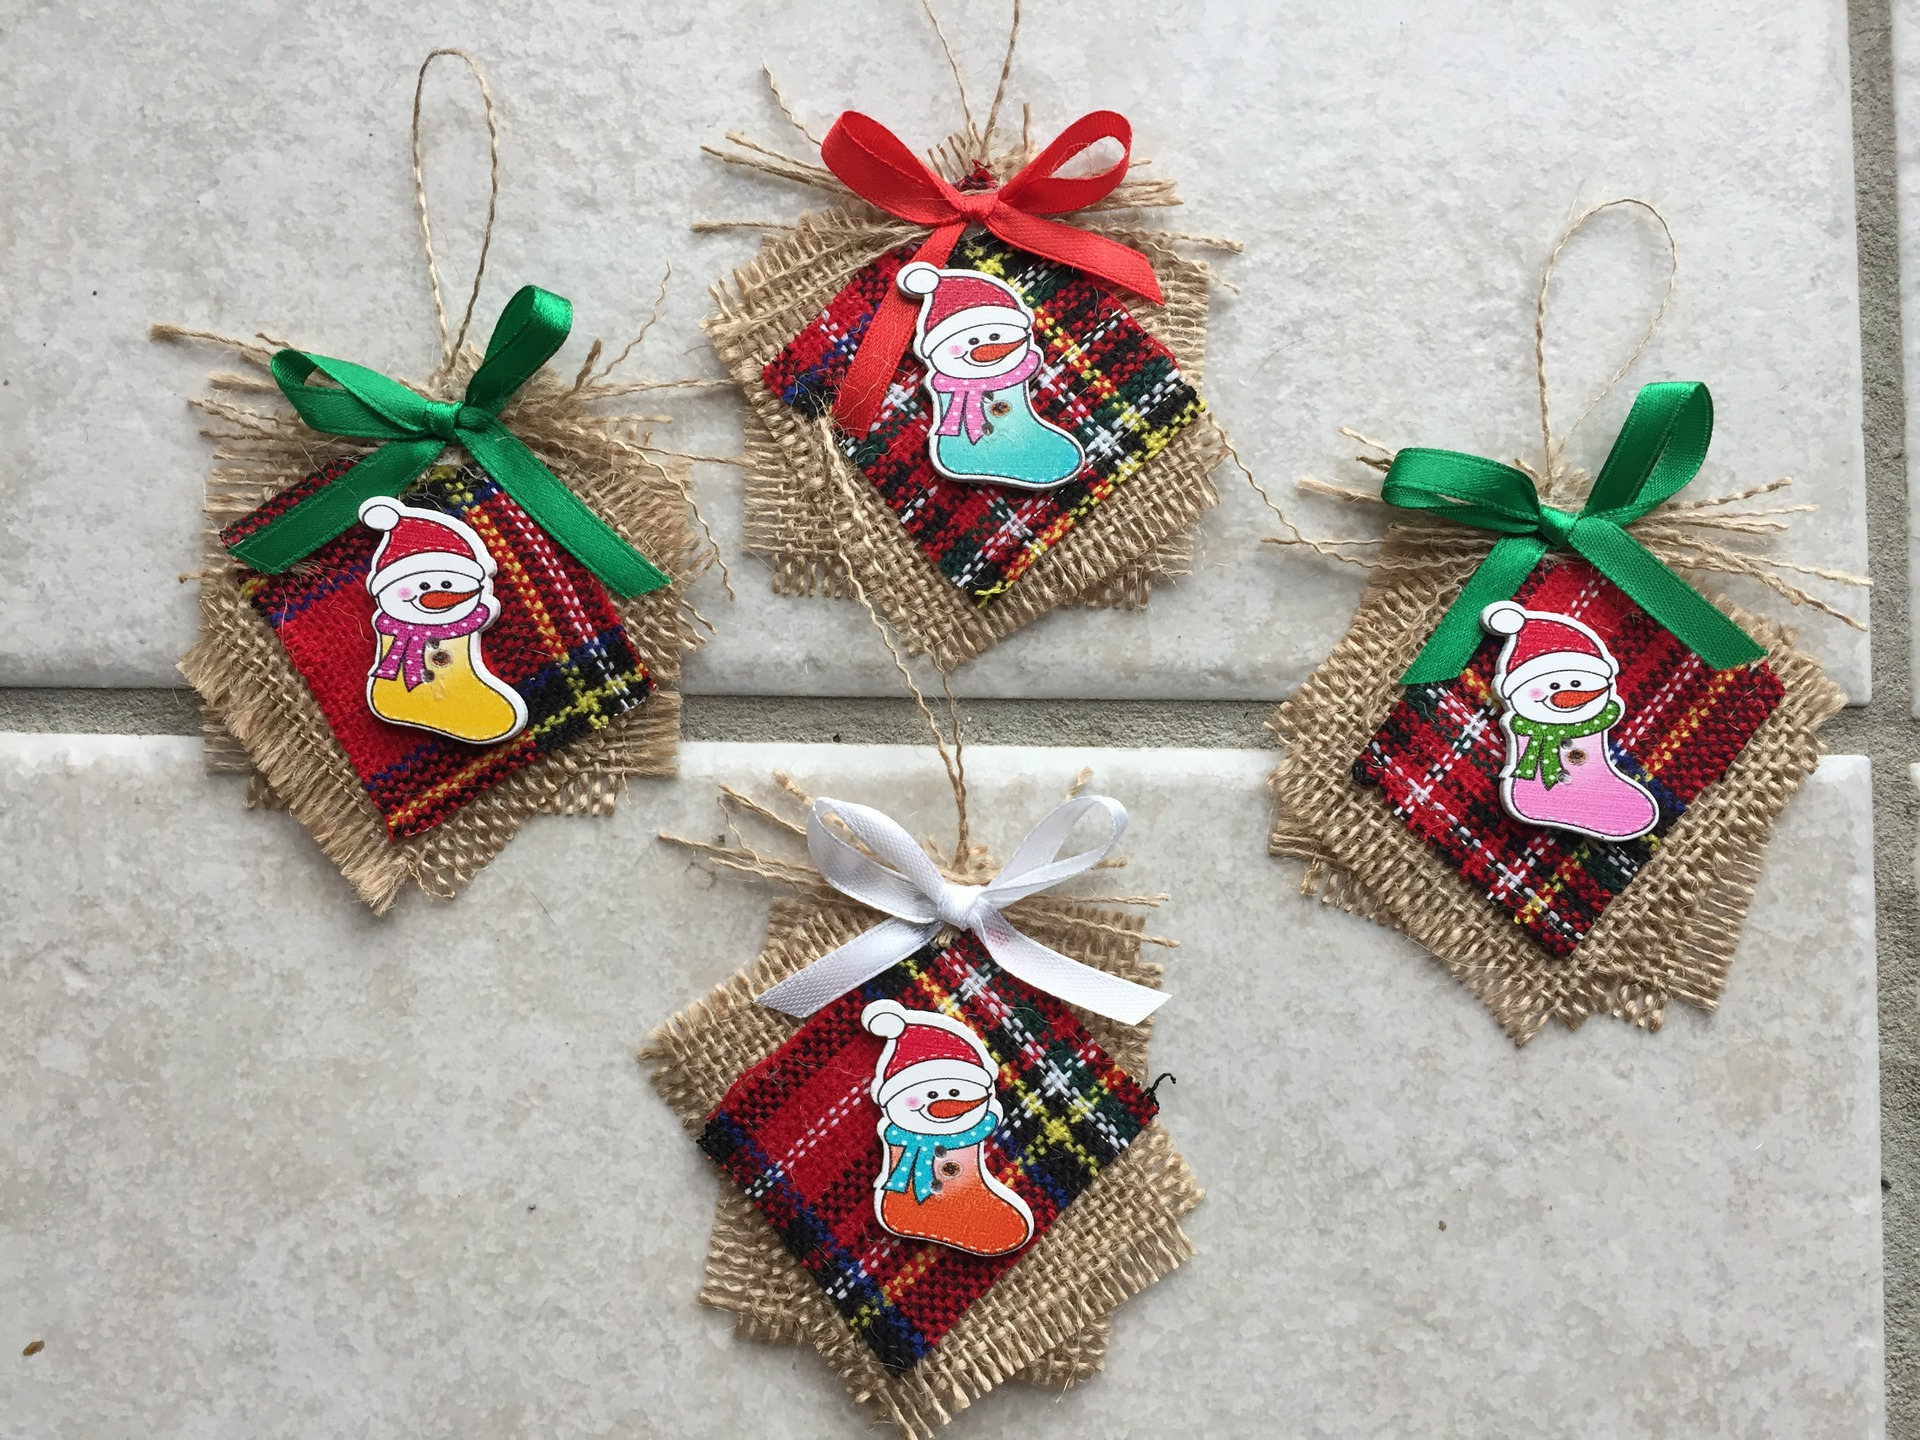 Lot de 4d coration suspendre au sapin de noel fait main for Decoration de noel fait main